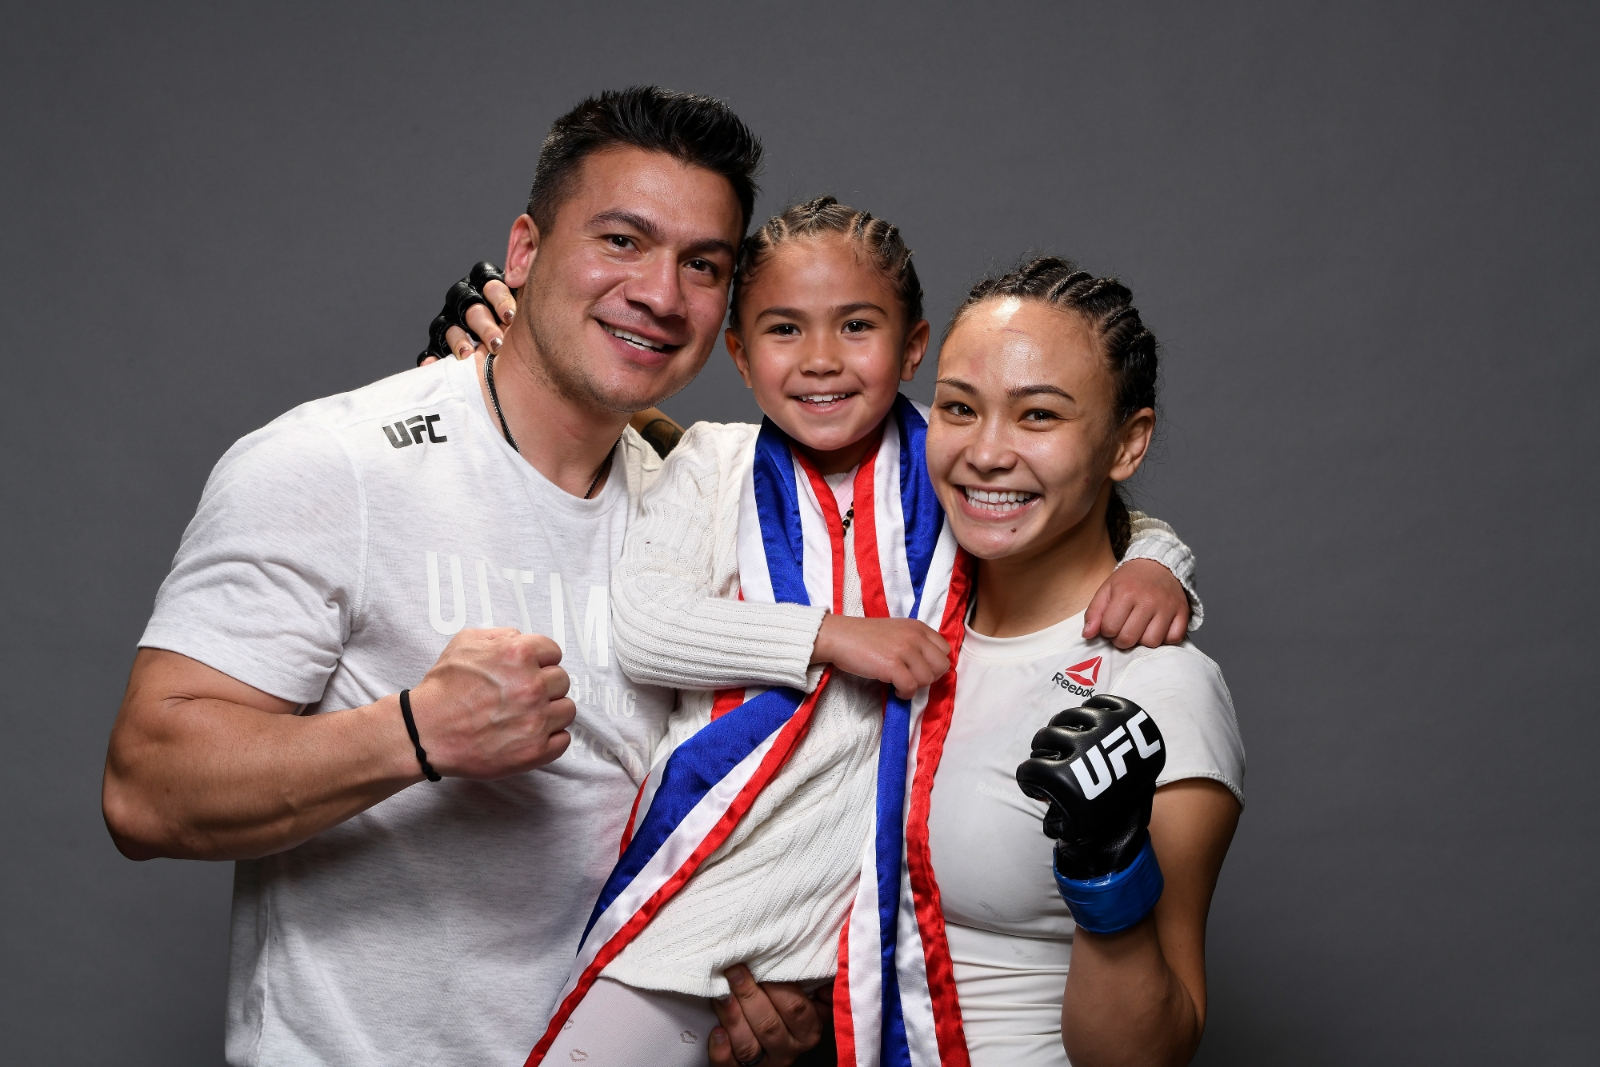 Cage Mom Martial Arts Champ Says Aurora Street Cred Helped Push Her To Victory Sentinel Colorado Waterson and gomez met at hooters in 2008. cage mom martial arts champ says